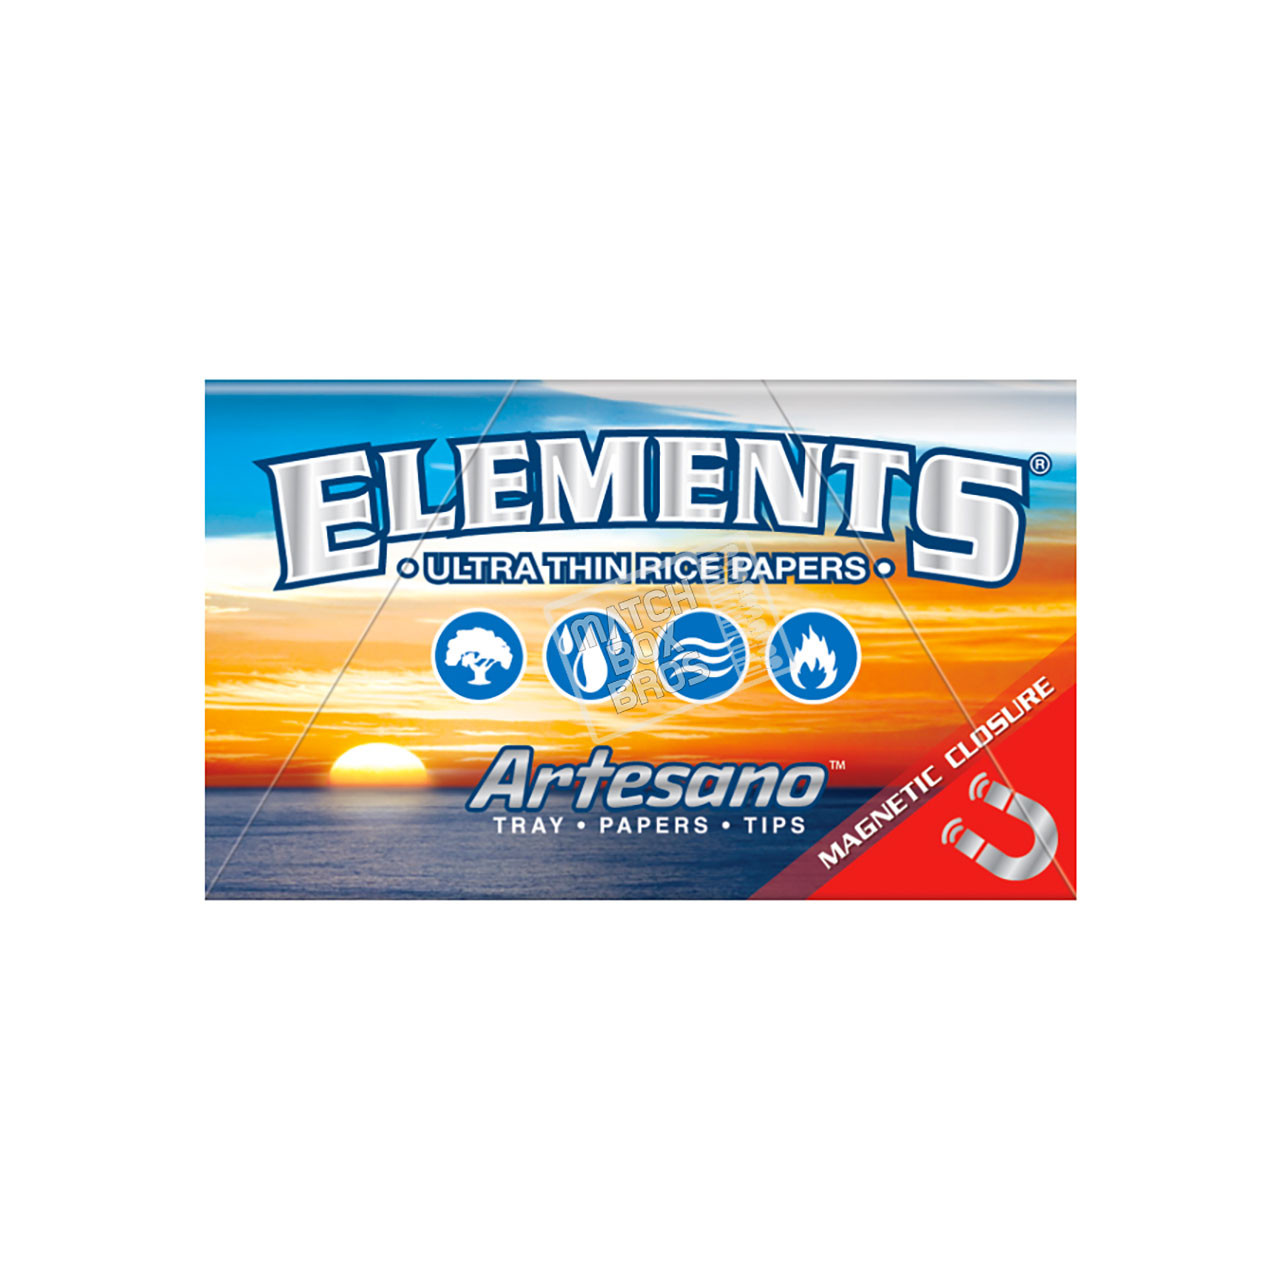 Elements Artesano 1 1/4 Size Paper